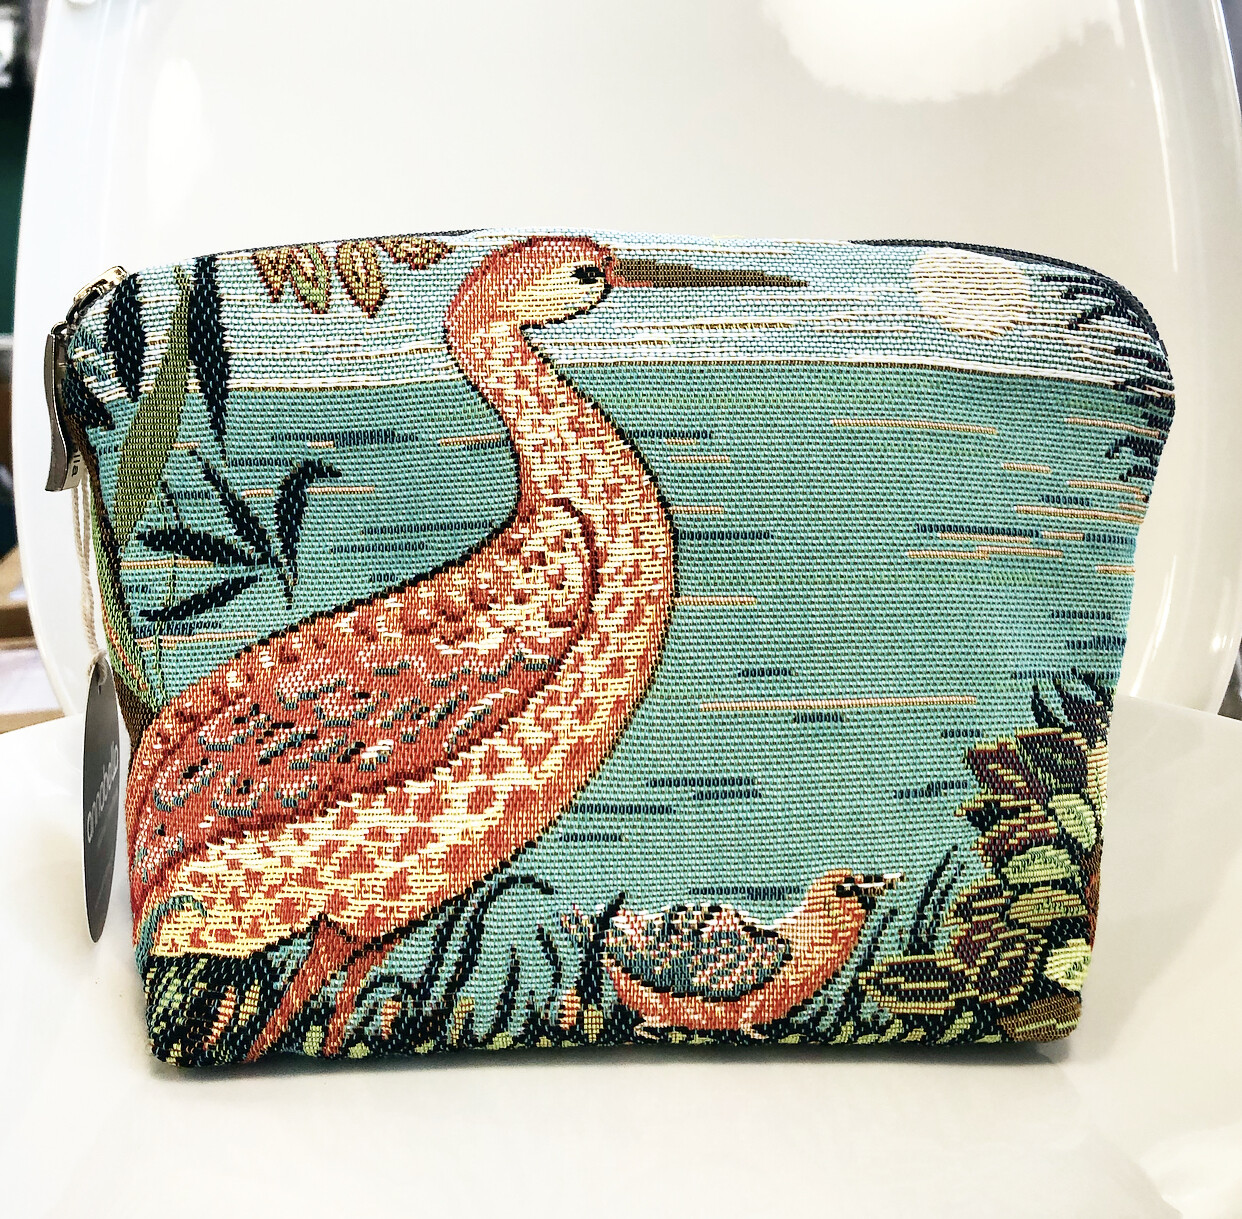 ANNABELLA - Handmade FRENCH TASTRY Cosmetic bag